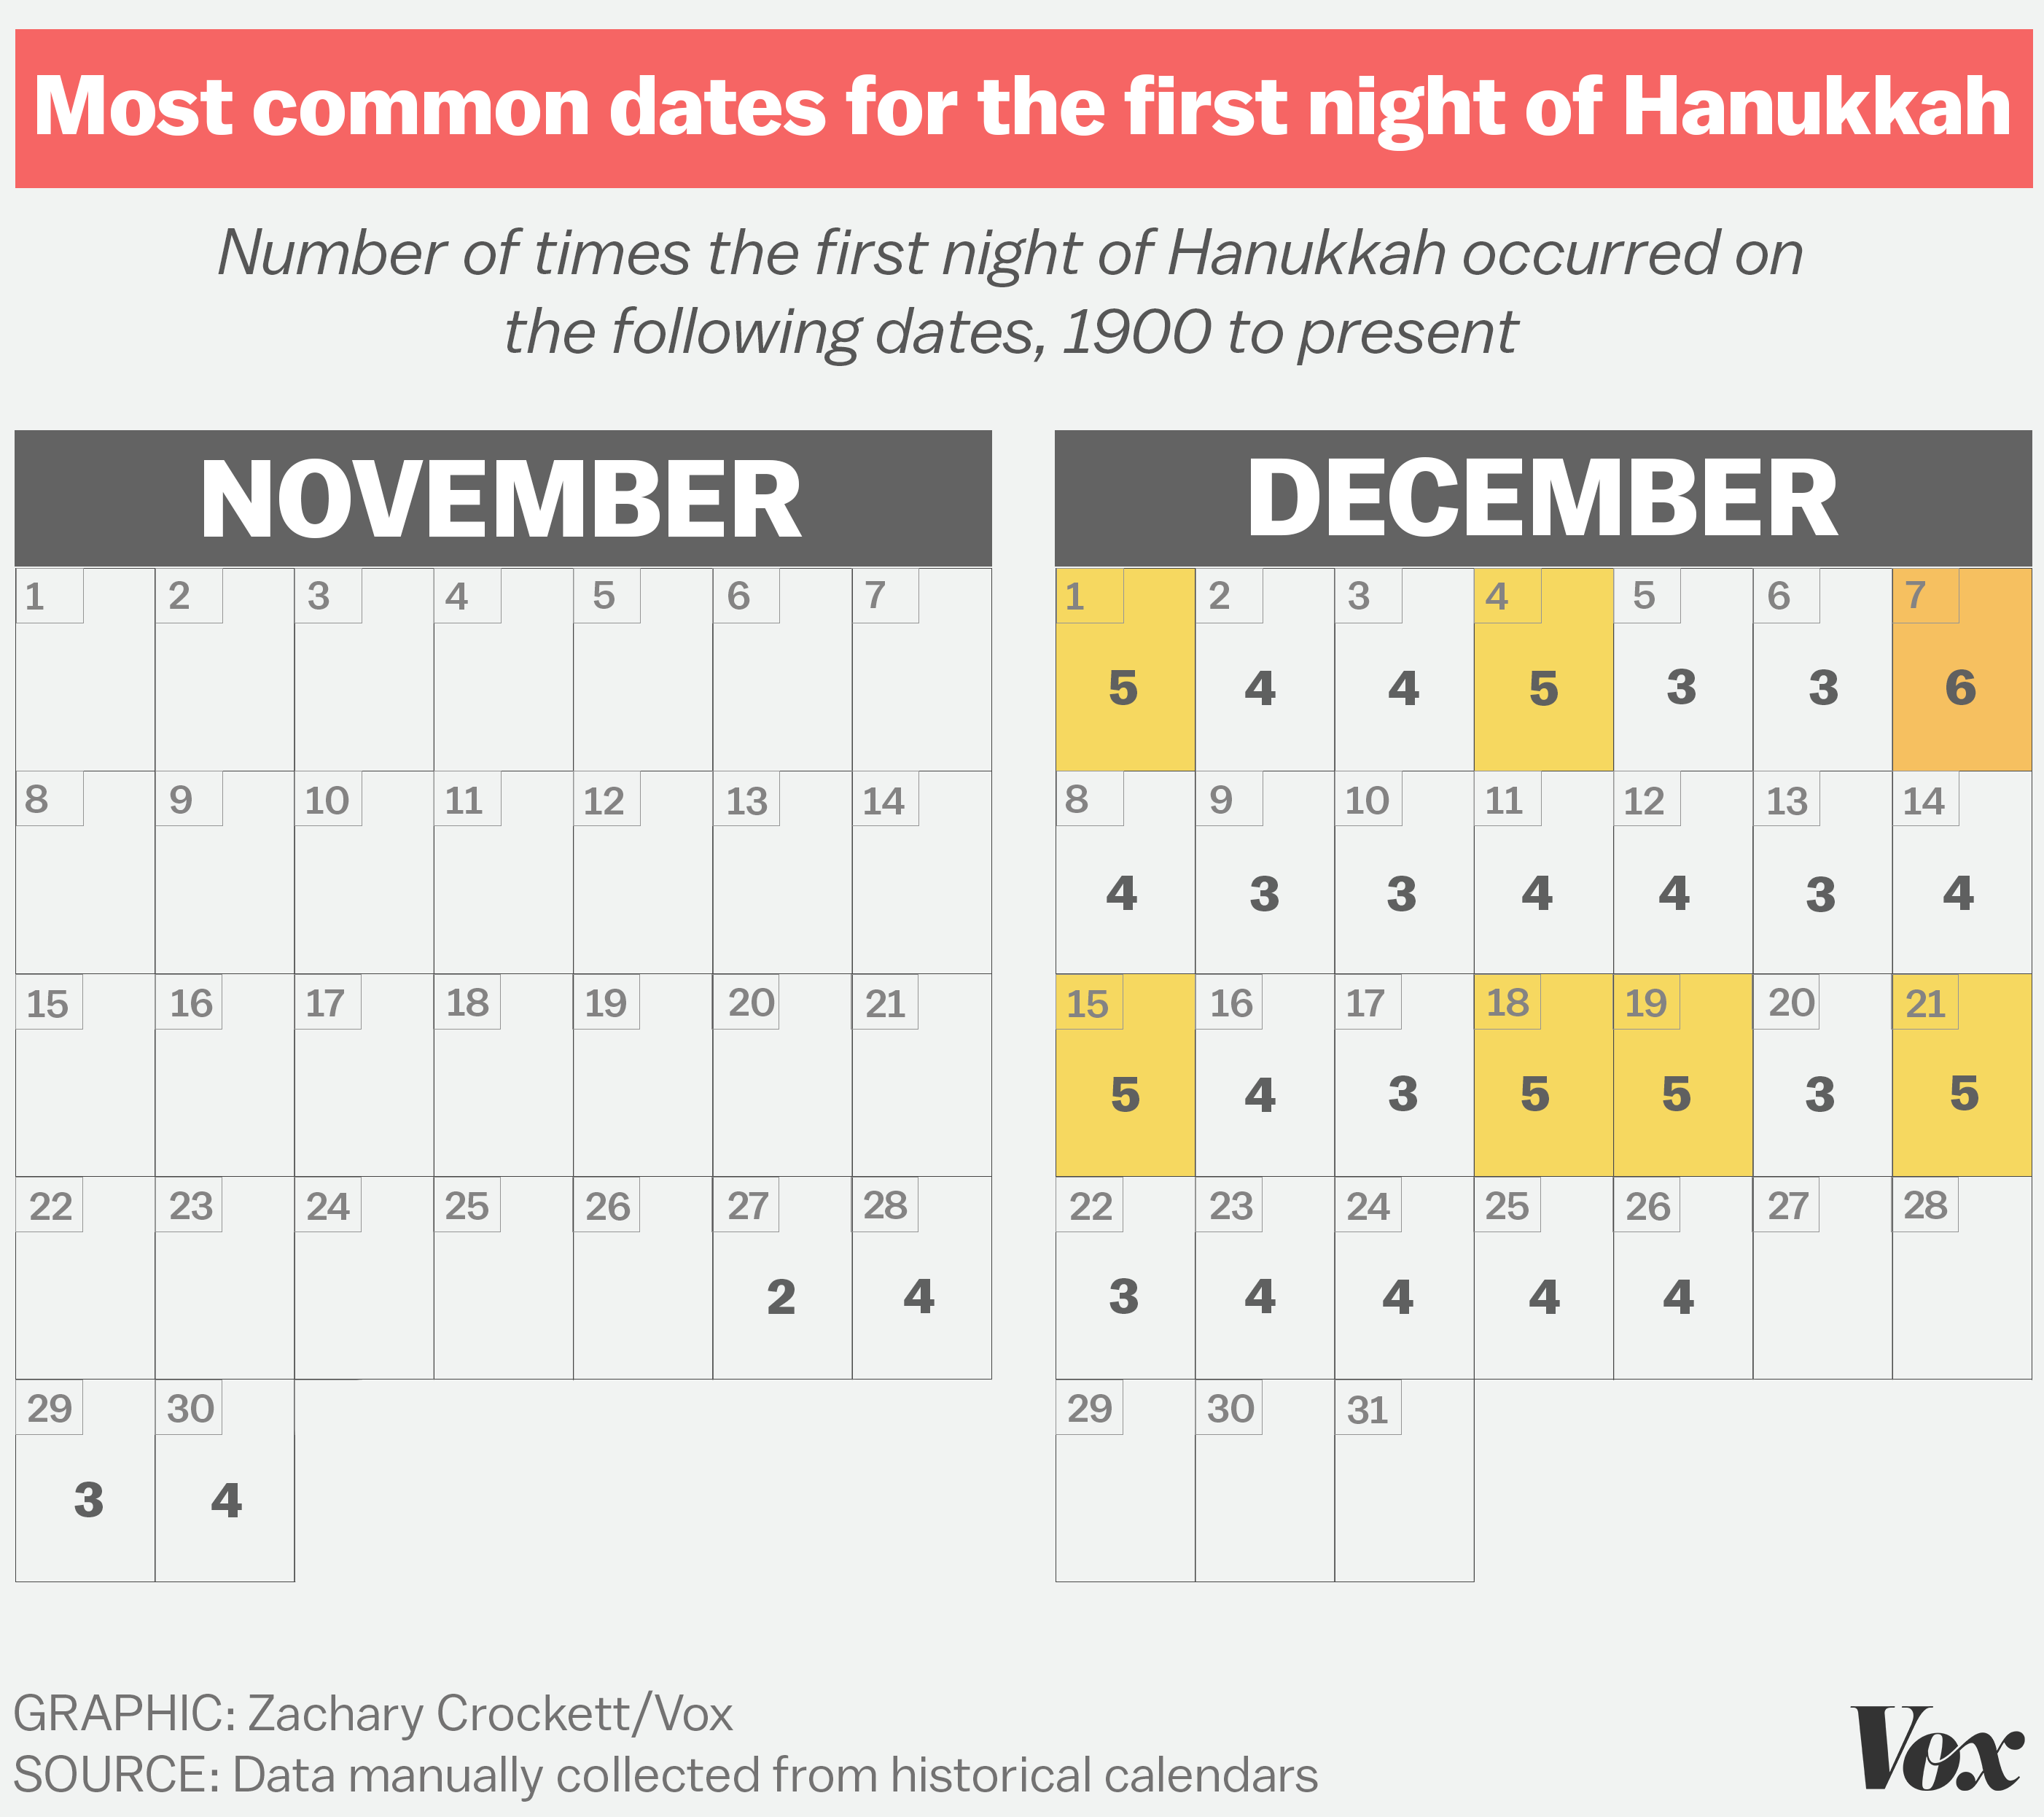 How often does the first night of Hanukkah fall on Christmas? - Vox